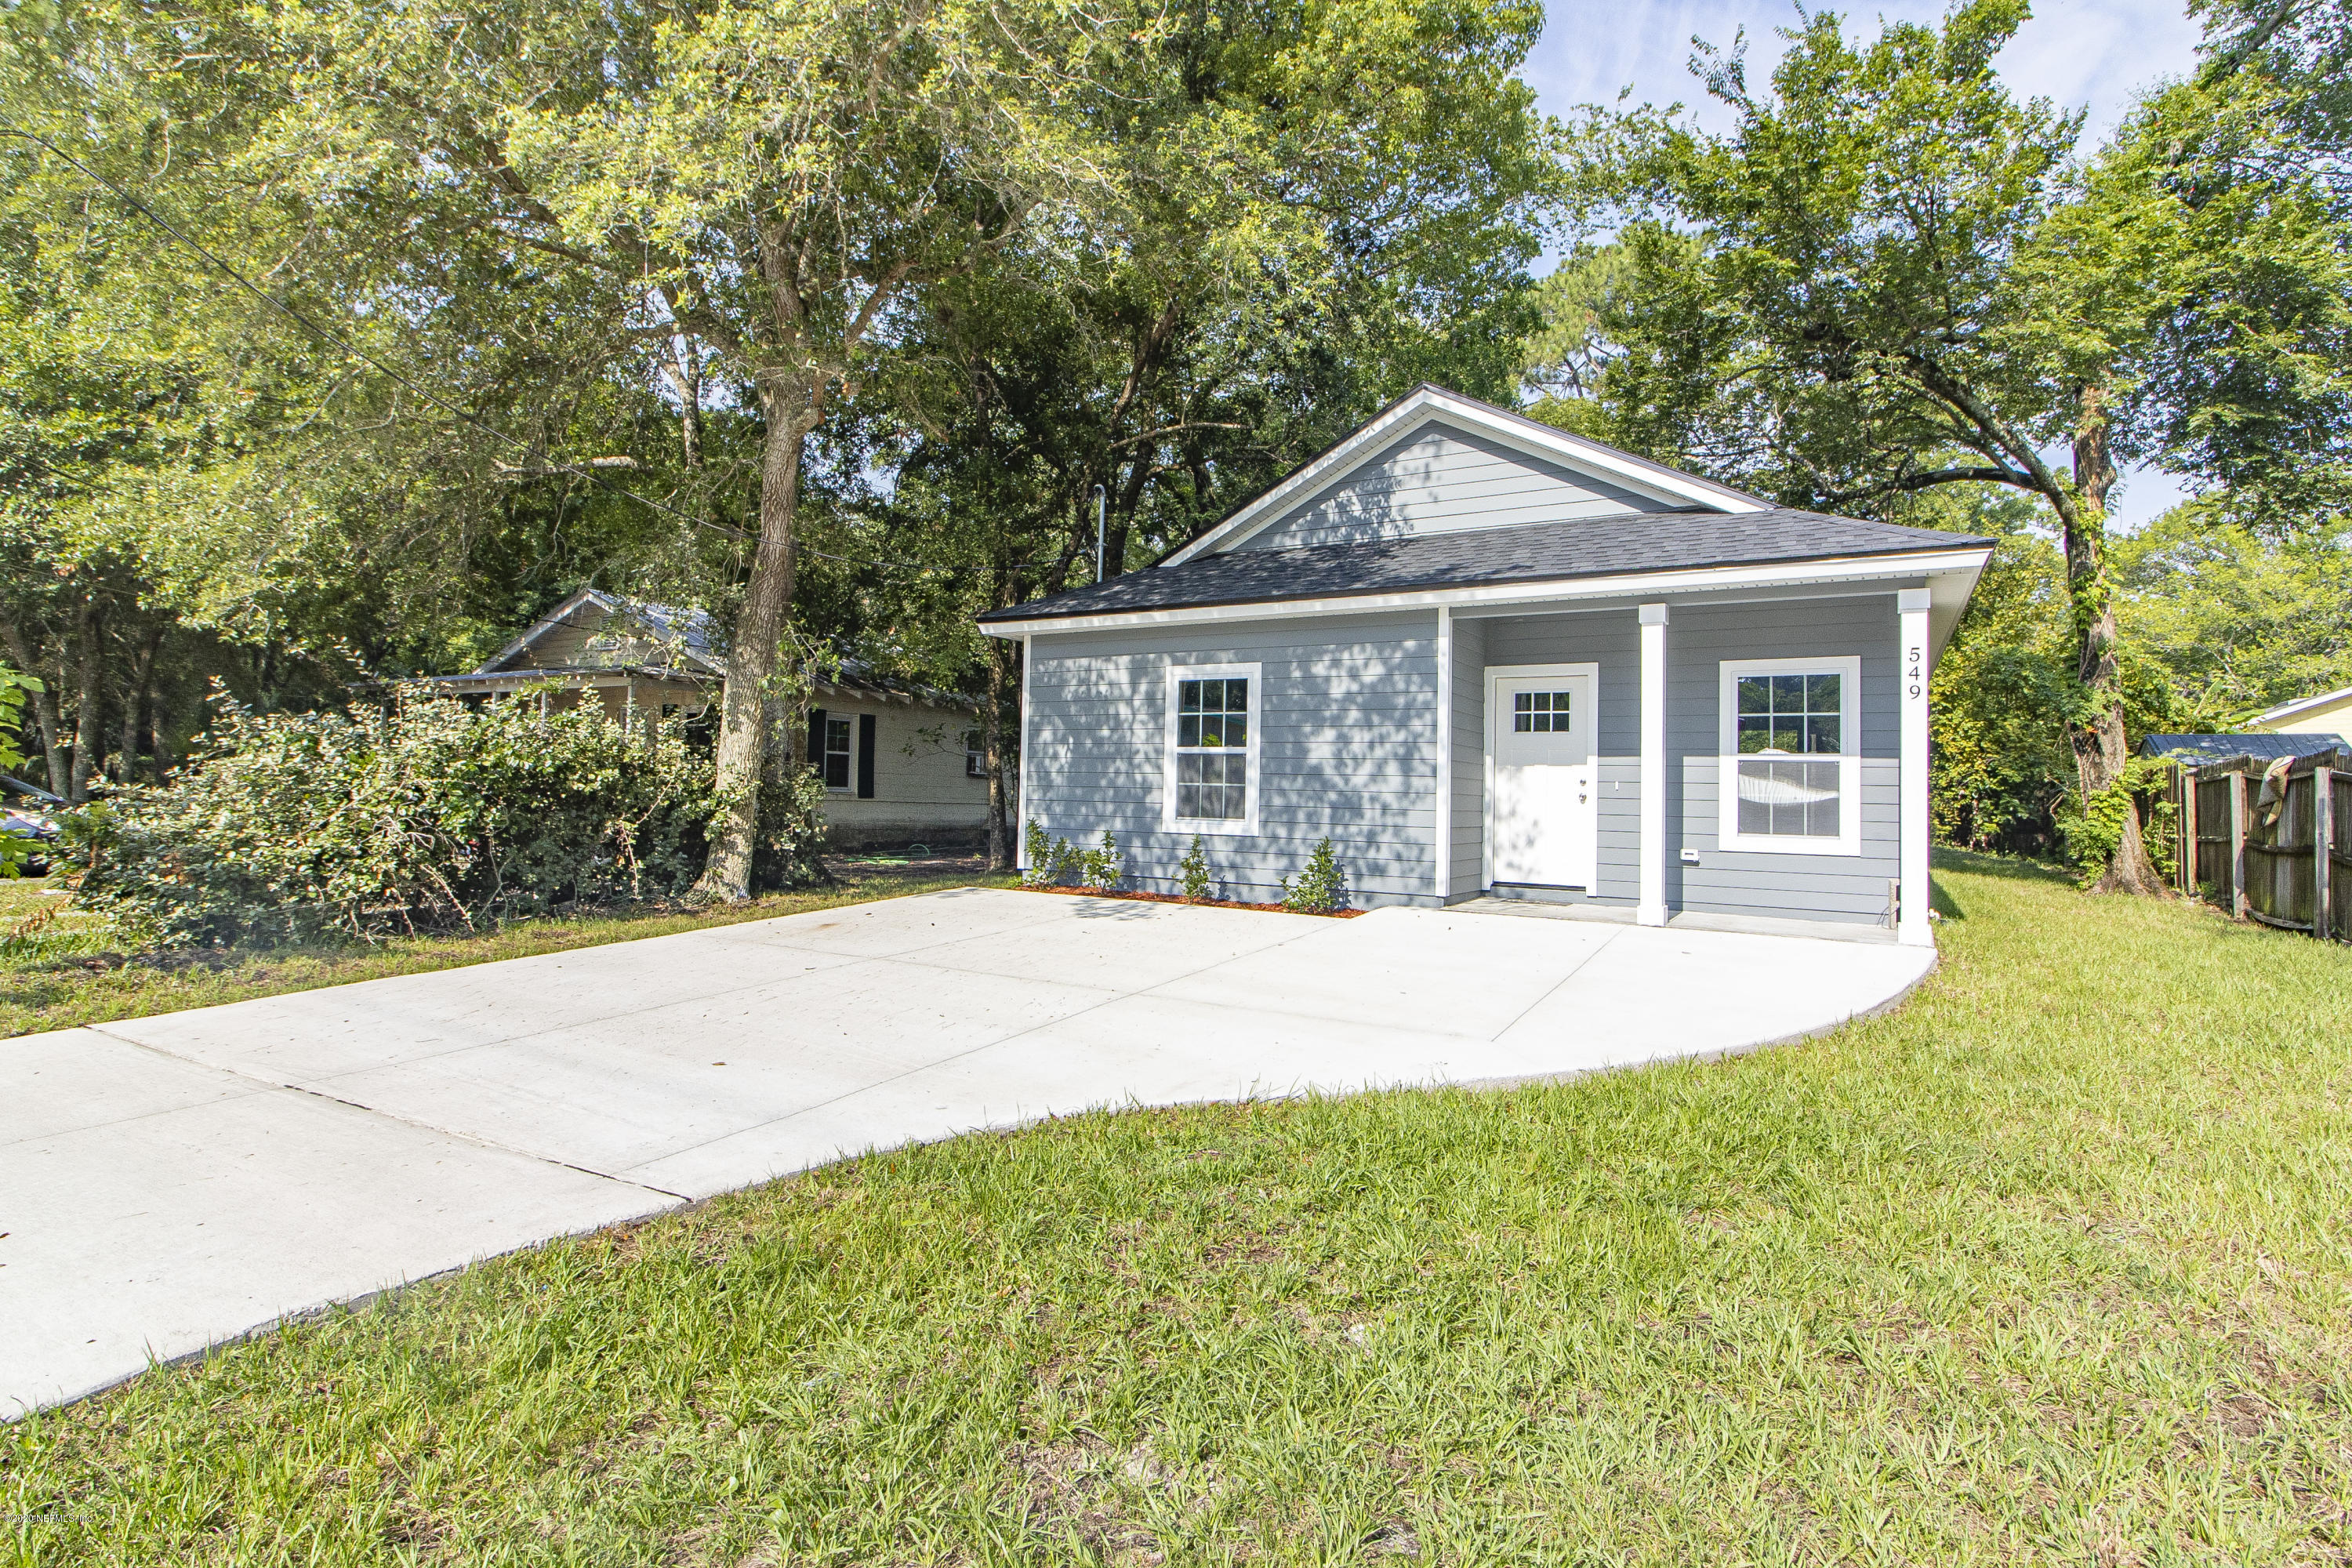 549 AIKEN, ST AUGUSTINE, FLORIDA 32084, 2 Bedrooms Bedrooms, ,2 BathroomsBathrooms,Residential,For sale,AIKEN,1054085